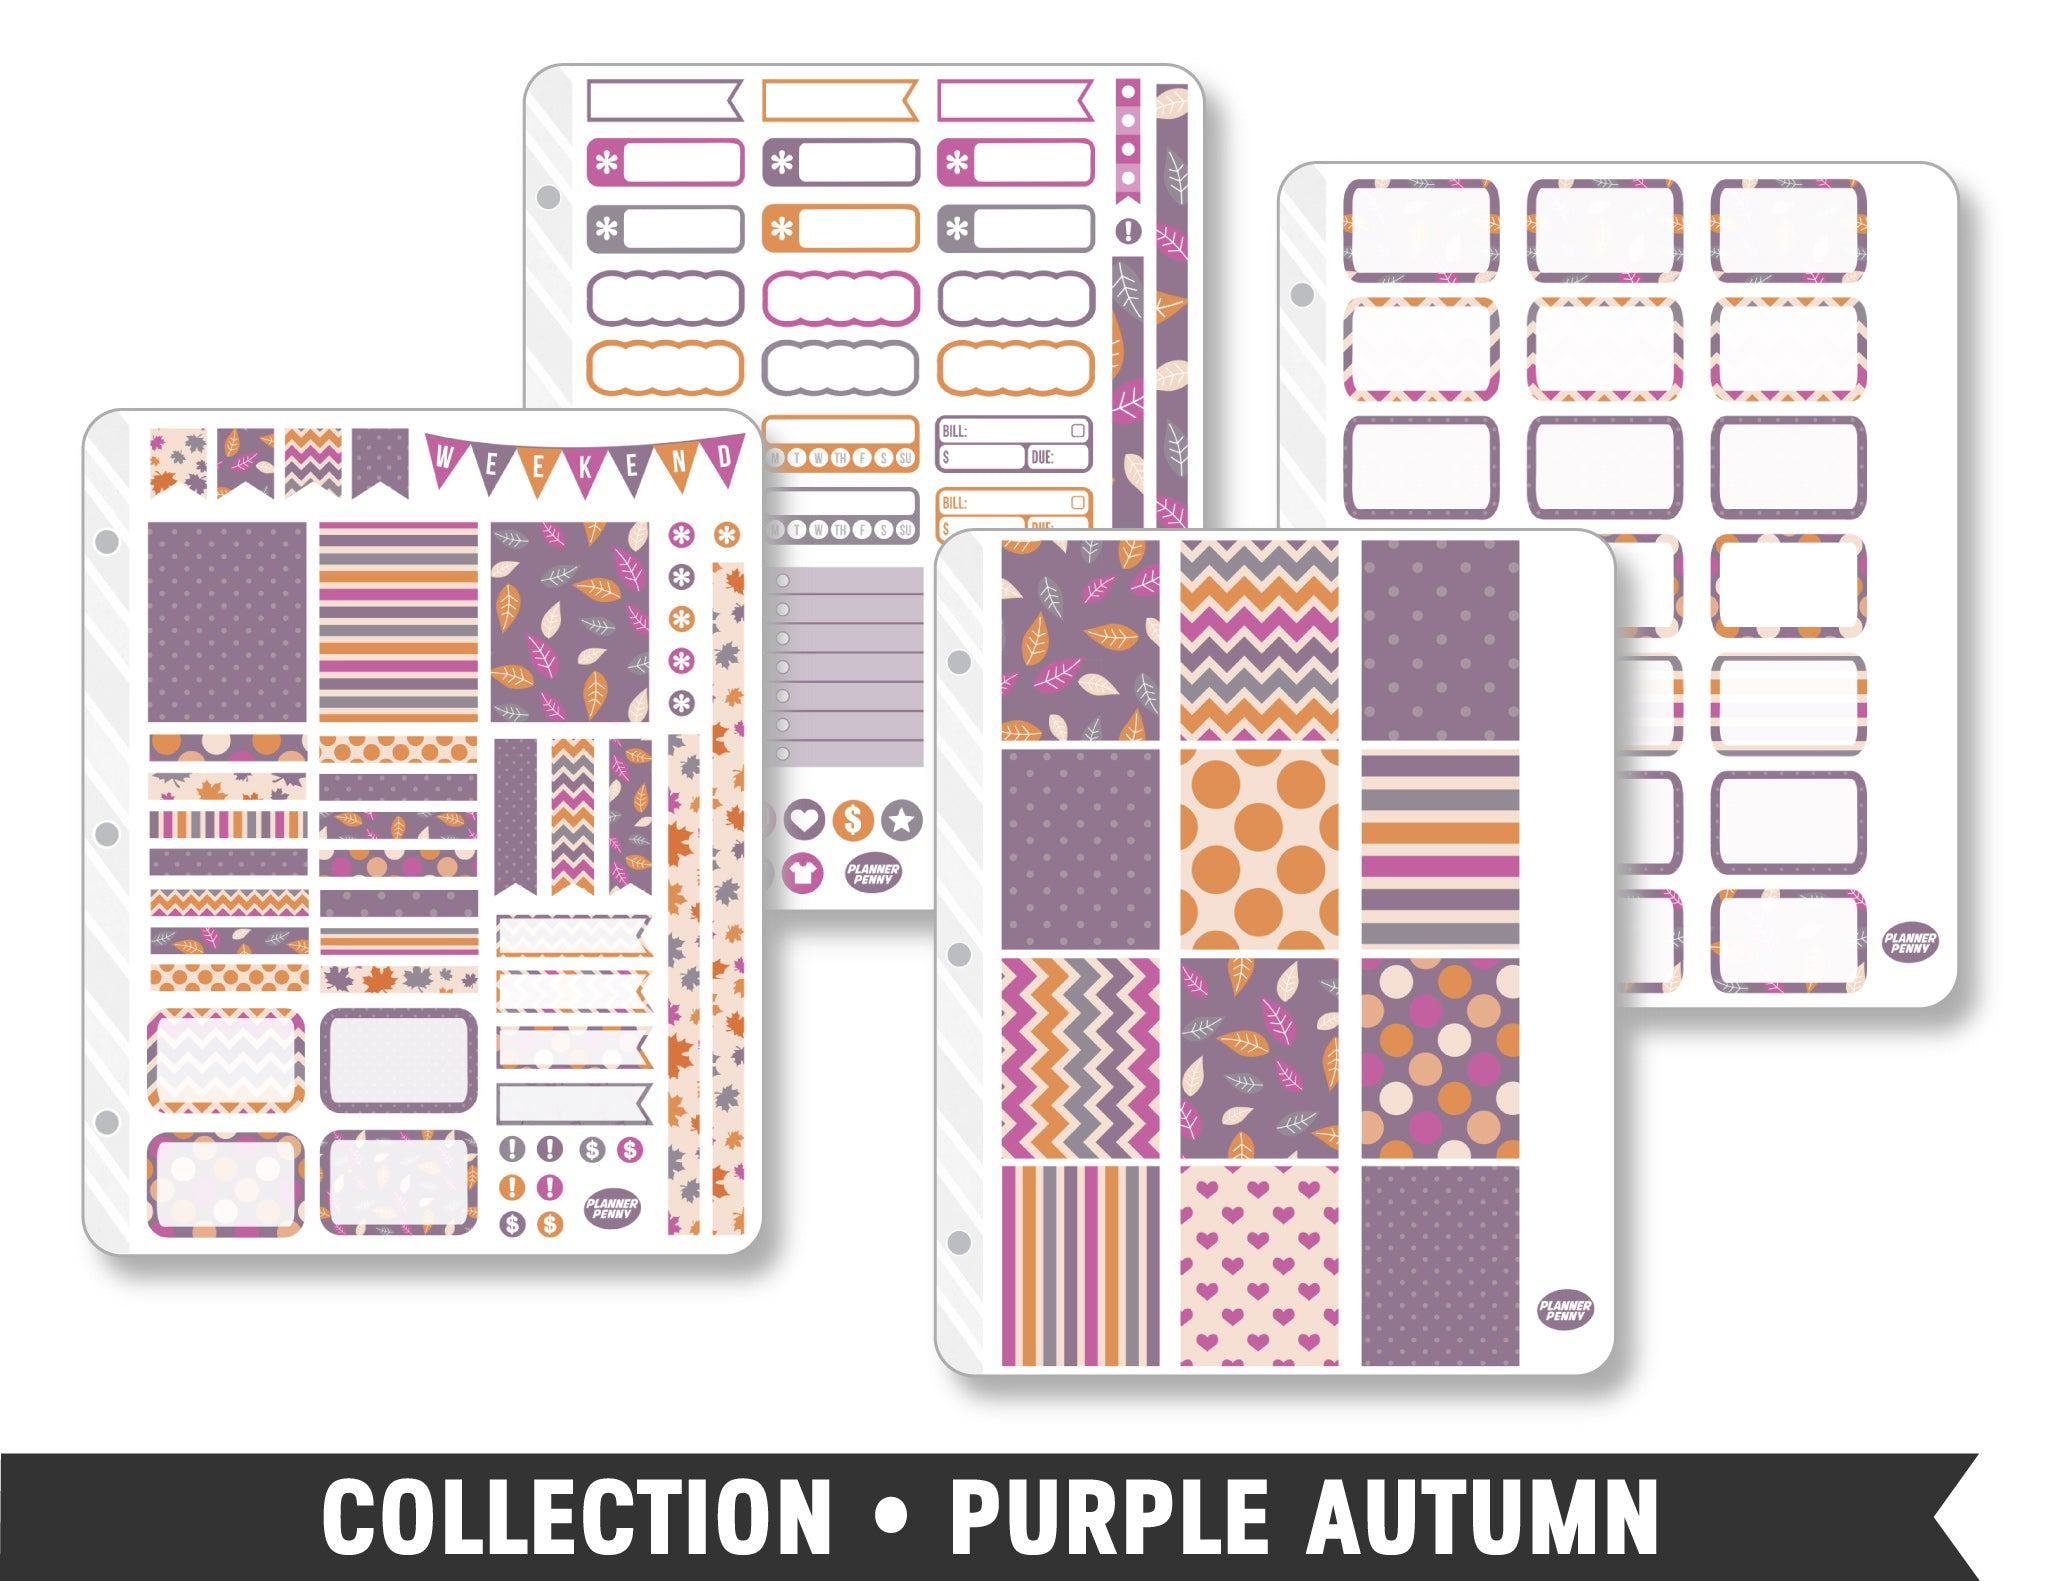 Collection • Purple Autumn Planner Stickers - Planner Penny